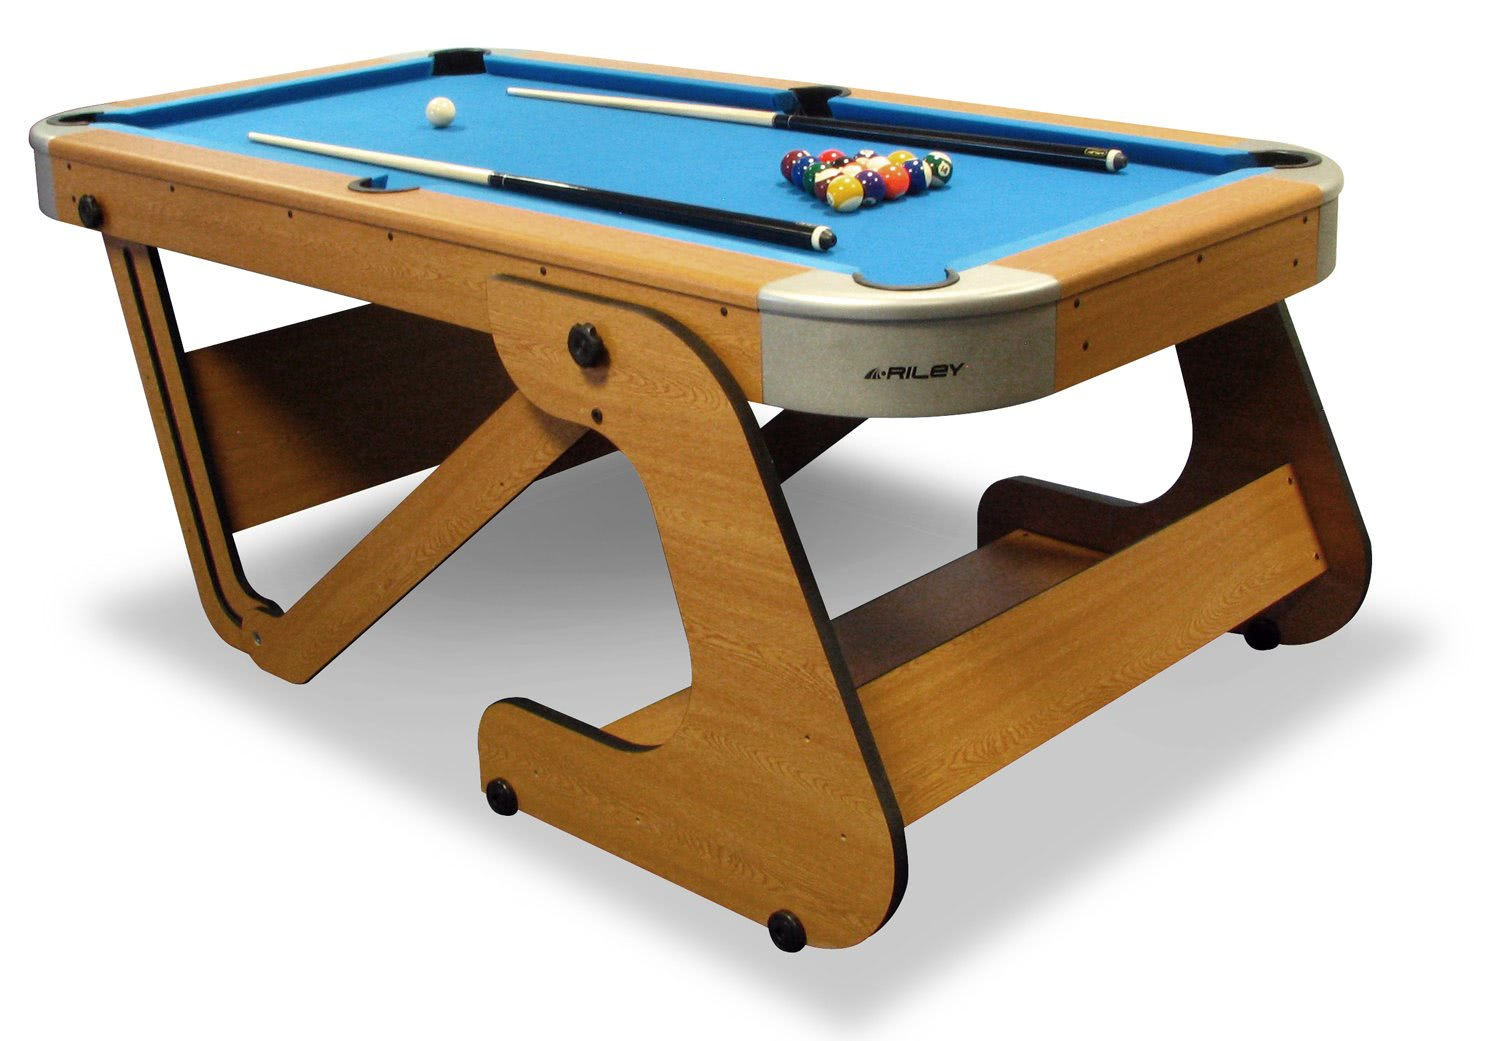 Riley folding pool table rpt 6f liberty games for Table 6 feet